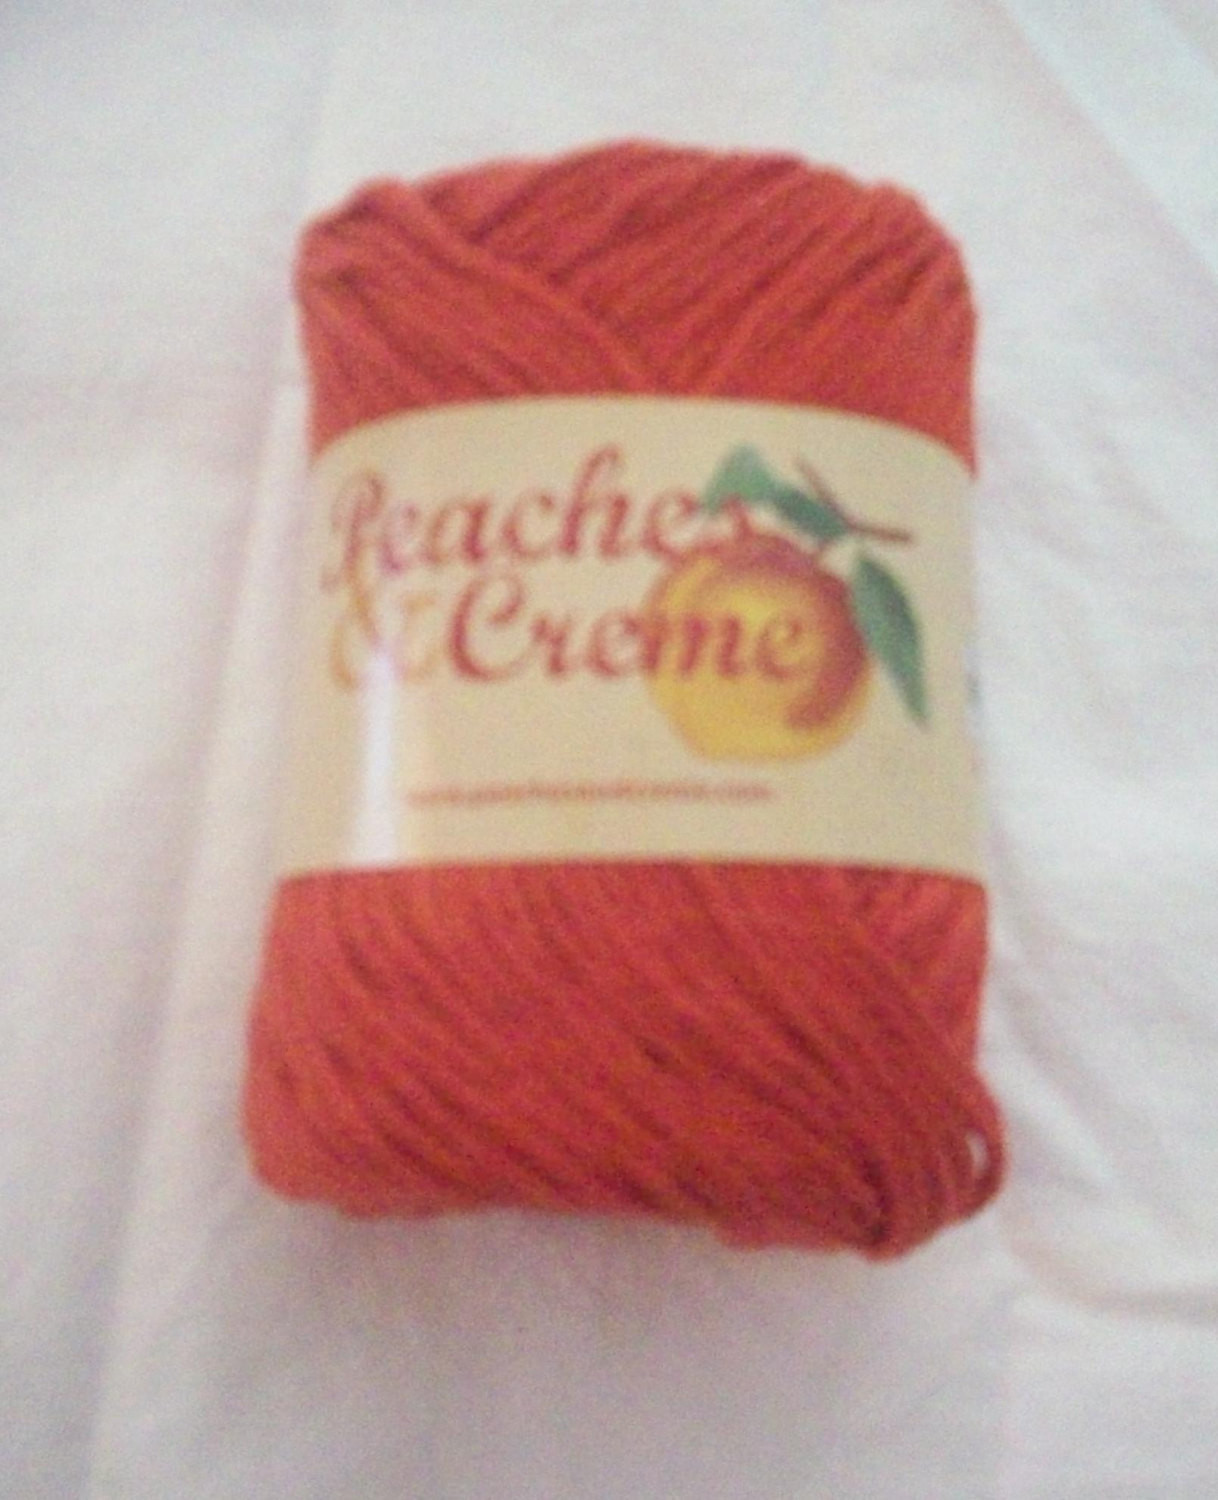 Peaches and Creme Yarn Crochet Patterns Lovely Peaches & Creme Cotton Yarn Earthy orange 2 5 Oz 70 9 G Of Amazing 42 Ideas Peaches and Creme Yarn Crochet Patterns